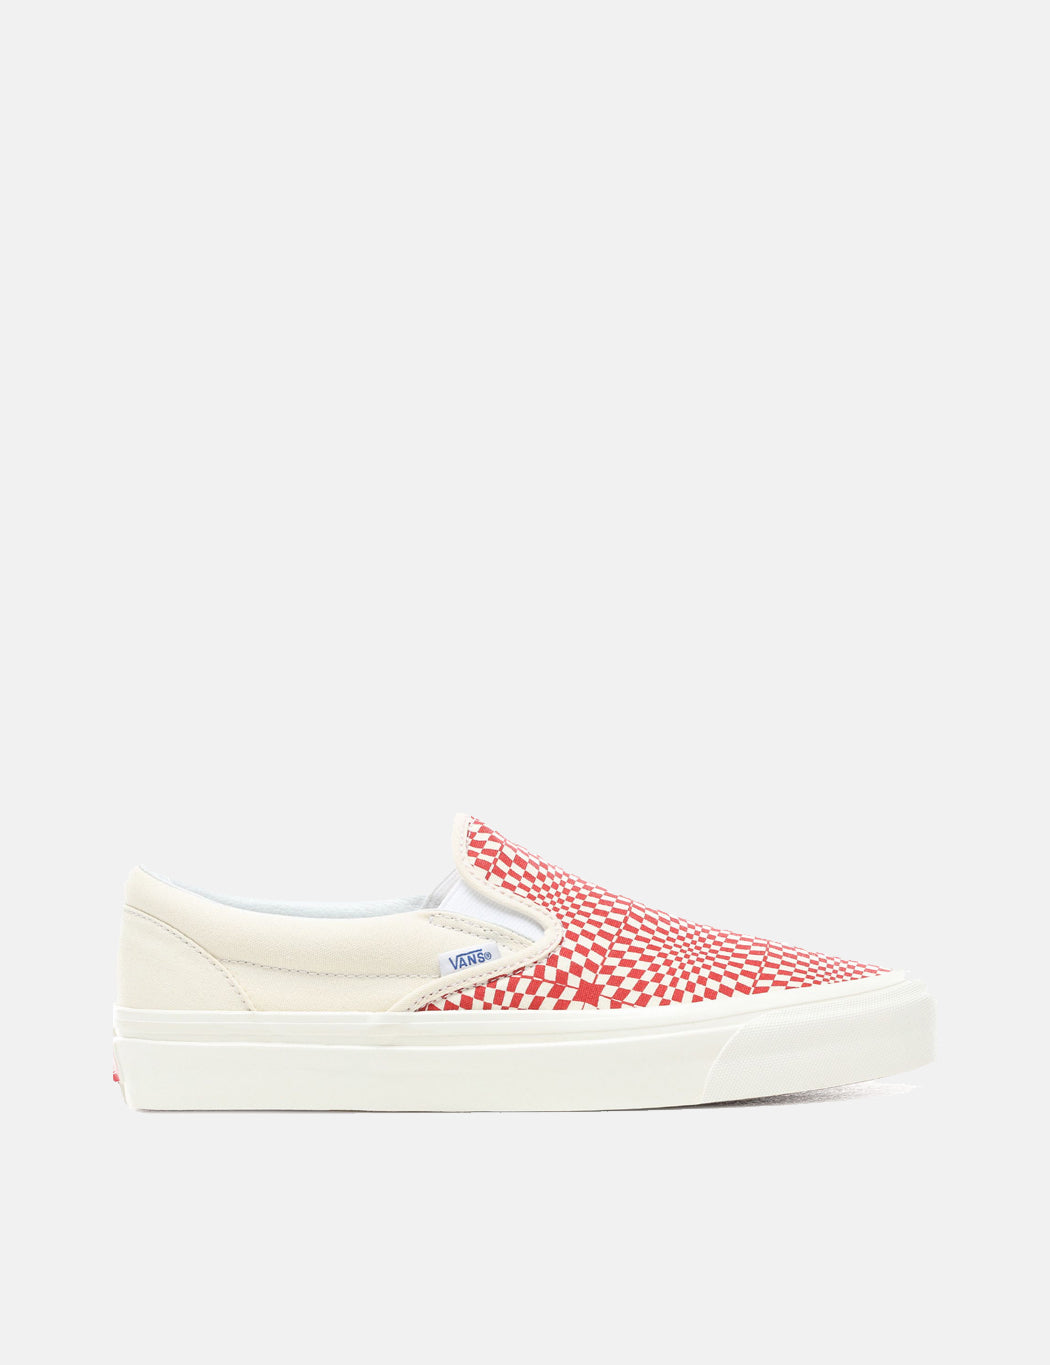 1bed7cb370 Vans Classic Slip-On 98 DX (Canvas) in Anaheim Factory OG Red White Warp  Check